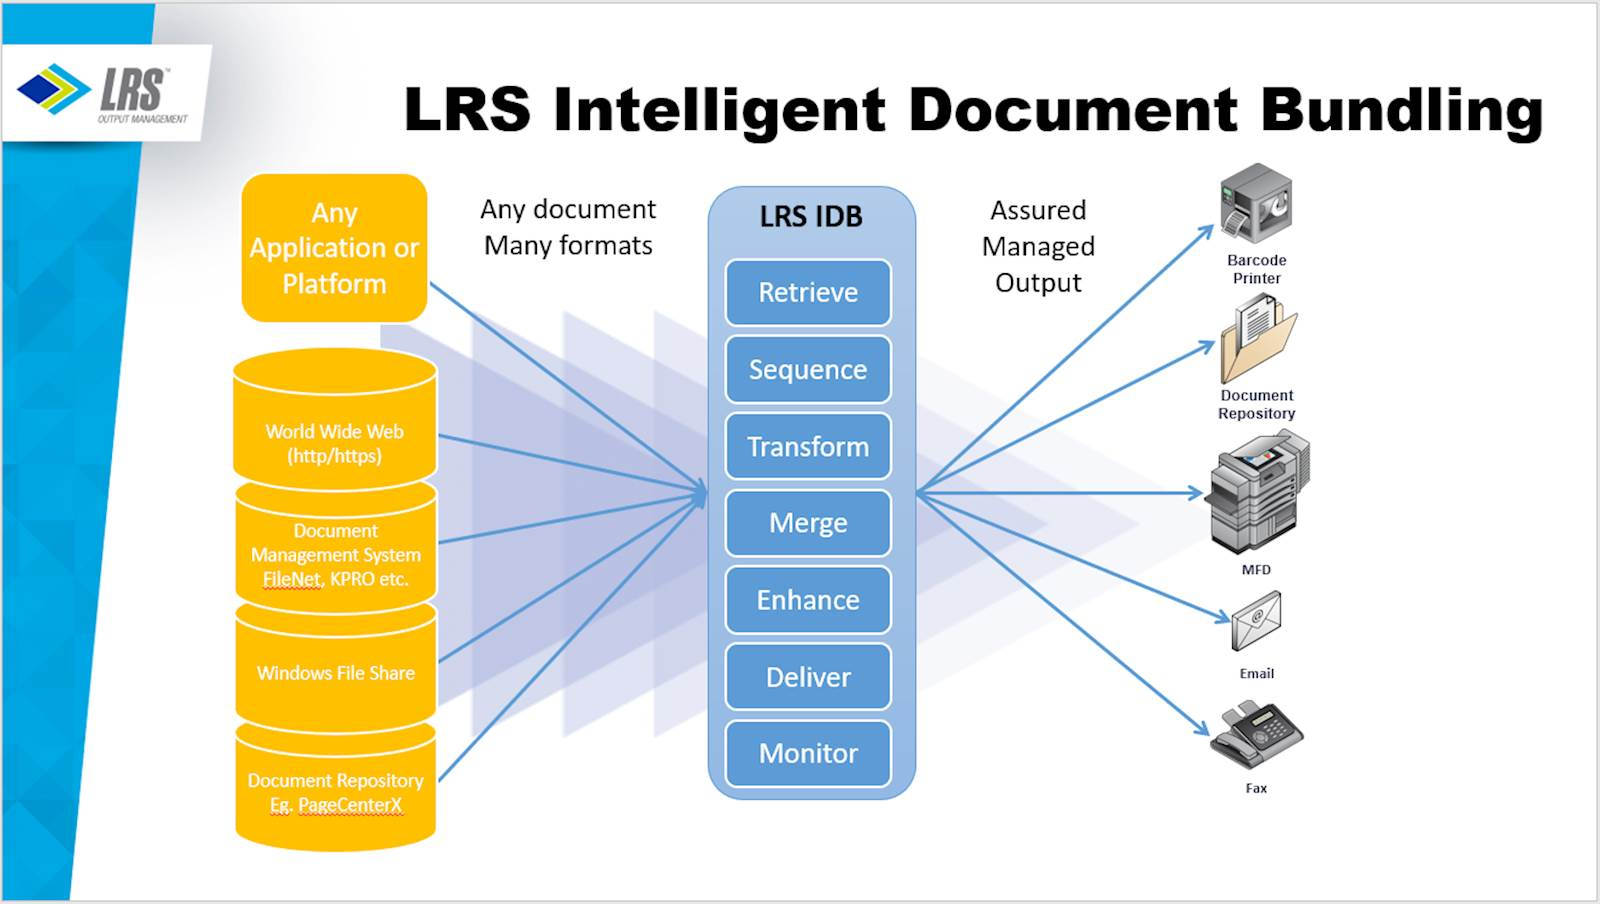 LRS Intellegent Document Bundling